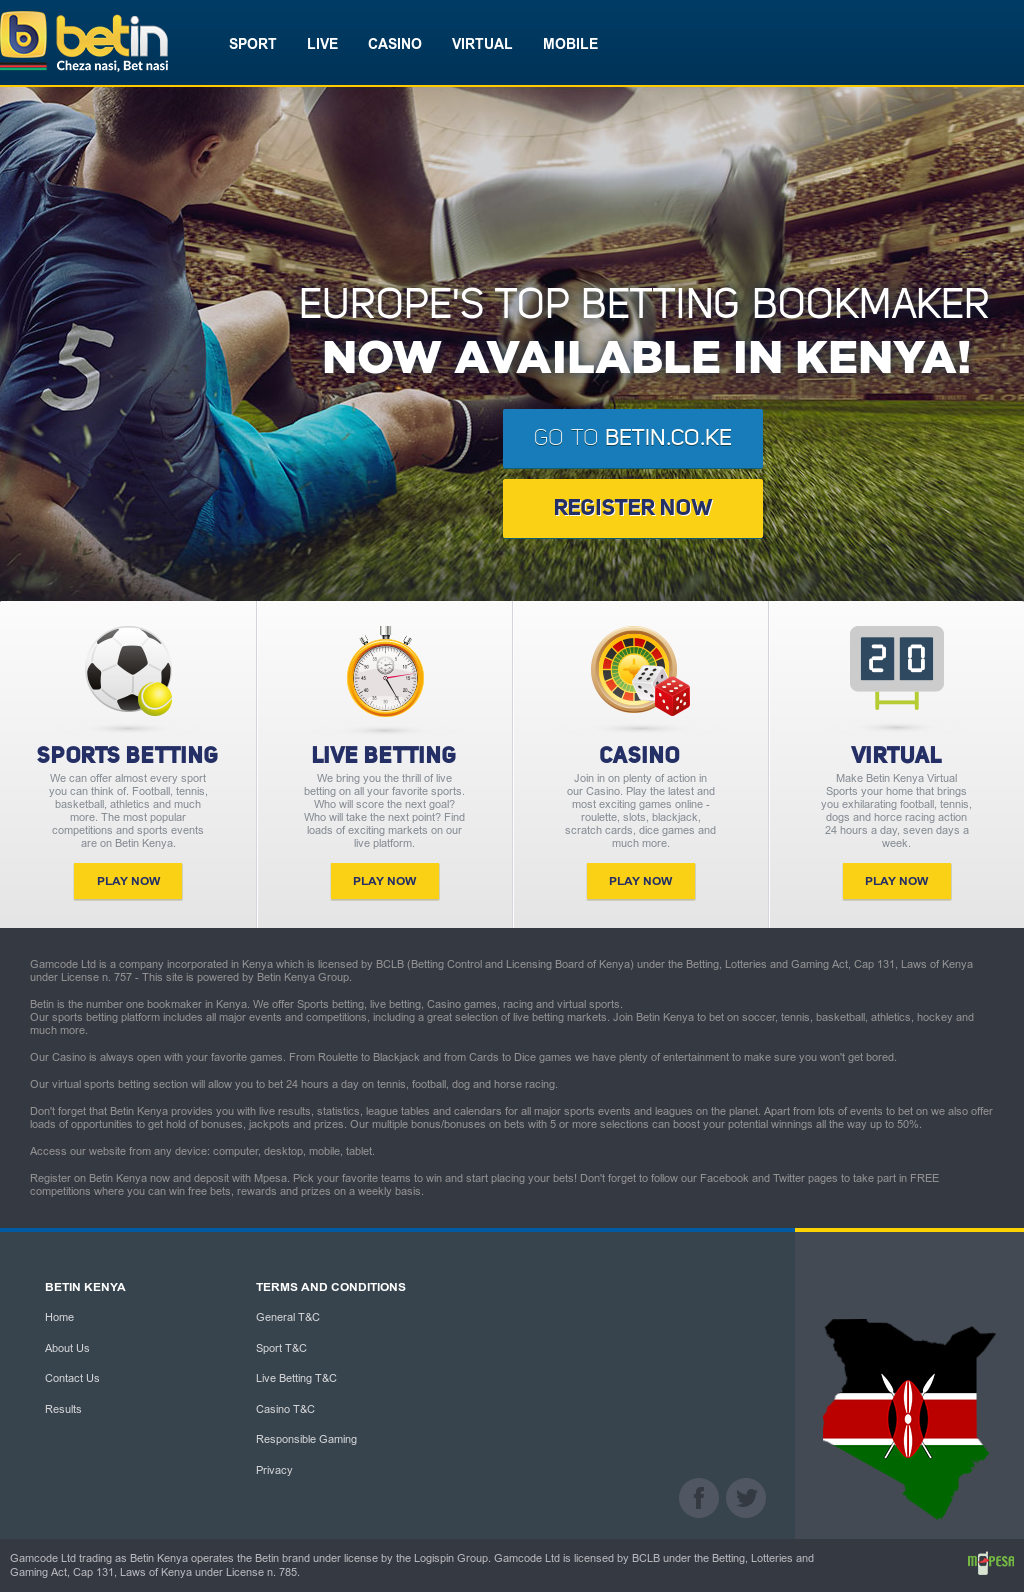 Betin Kenya Competitors, Revenue and Employees - Owler Company Profile